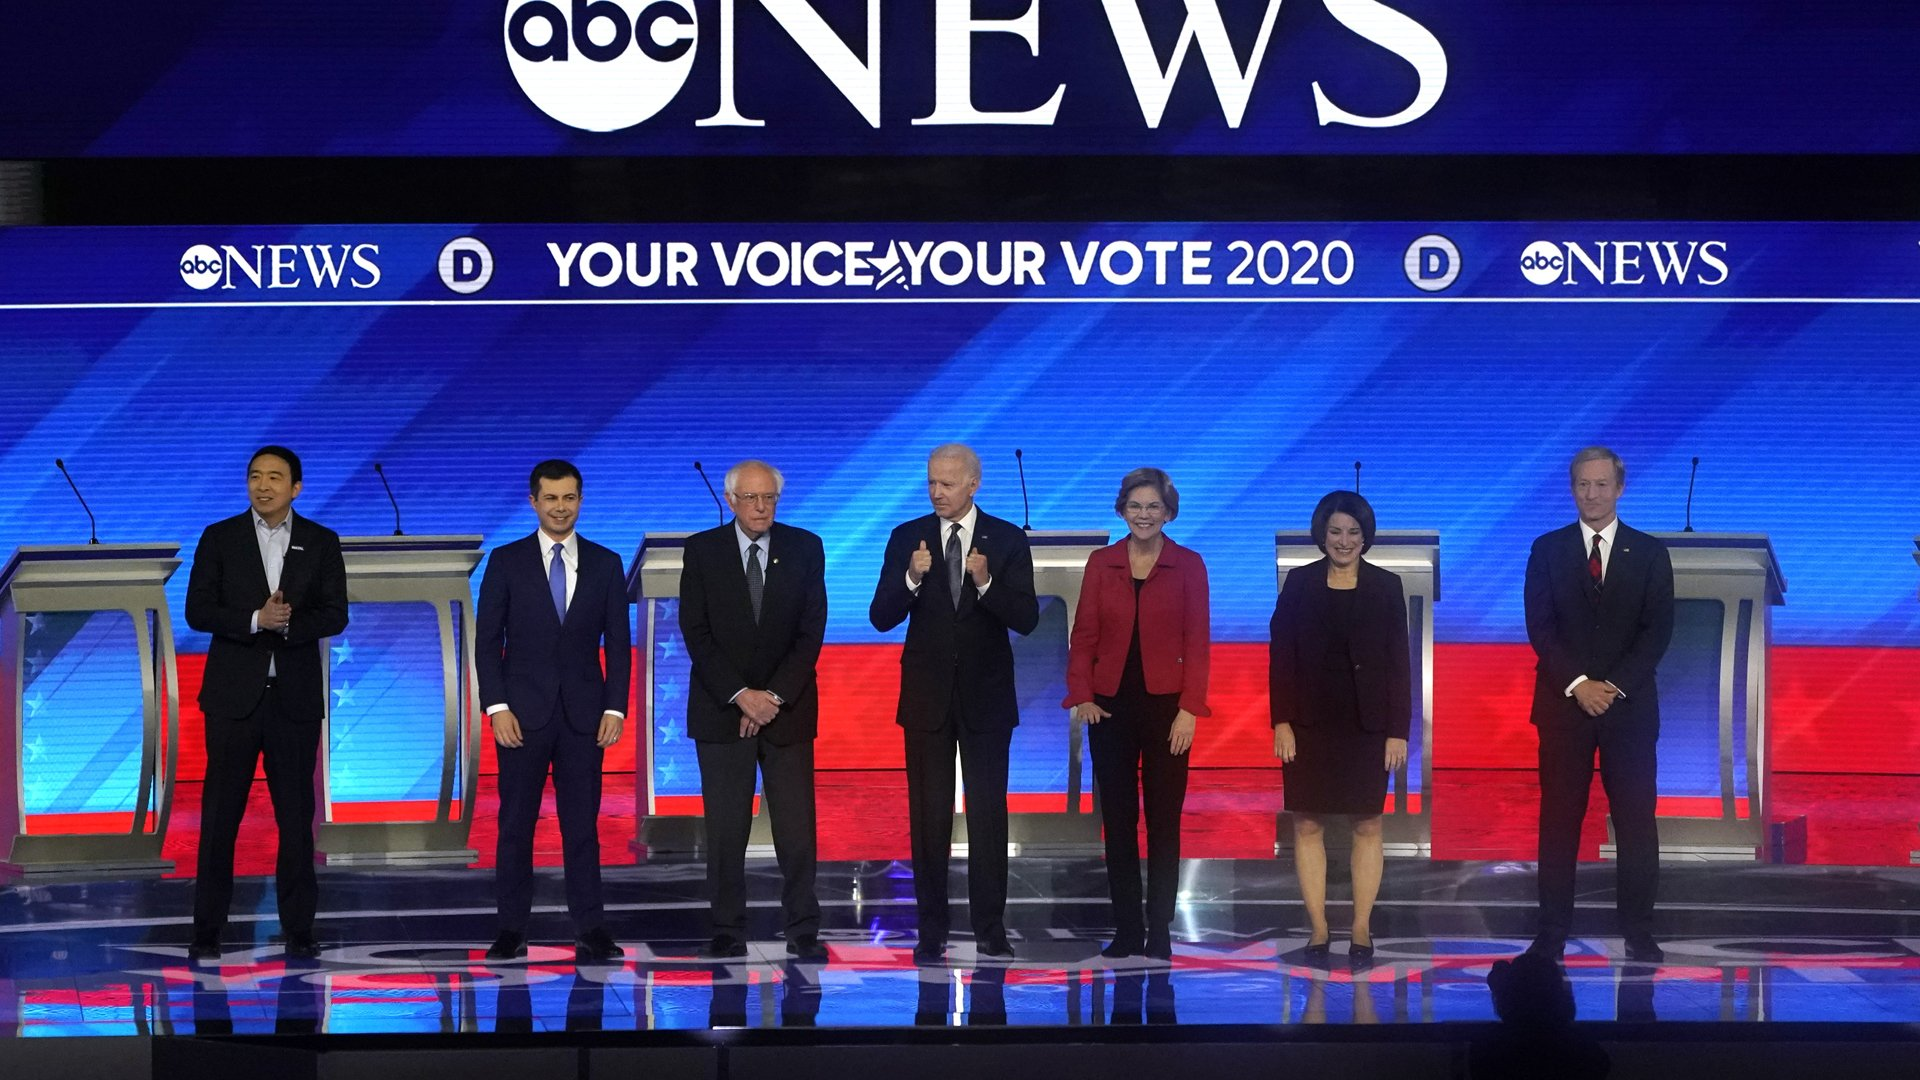 From left: Democratic presidential hopefuls Andrew Yang, Pete Buttigieg, Sen. Bernie Sanders, former Vice President Joe Biden, Sen. Elizabeth Warren, Sen. Amy Klobuchar and Tom Steyer arrive onstage for the eighth Democratic primary debate of the 2020 presidential campaign season at St. Anselm College in Manchester, New Hampshire, on Feb. 7, 2020. (Credit: Timothy A. Clary / AFP / Getty Images)